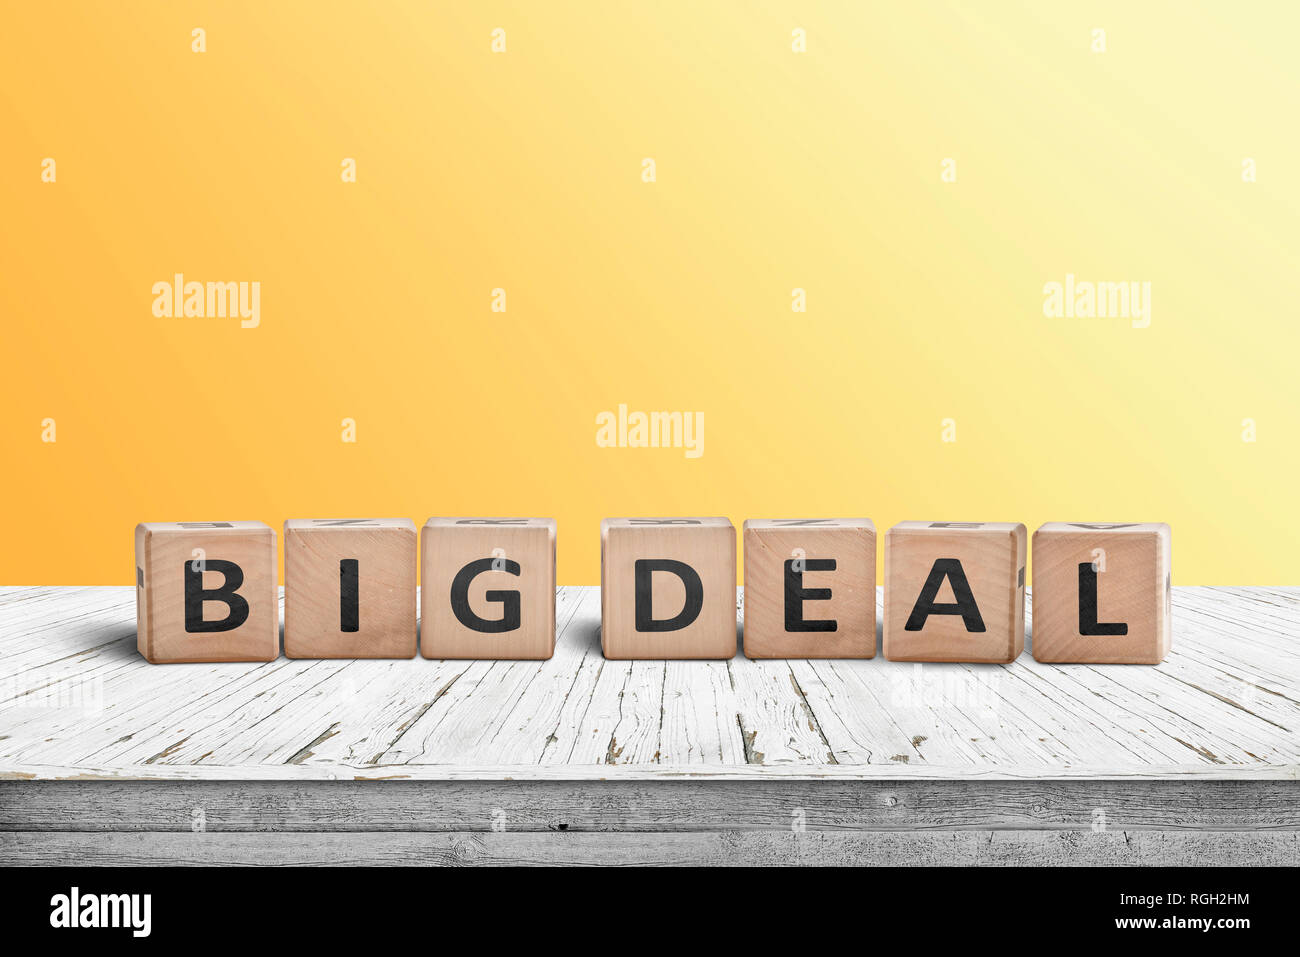 dd51d51eb84 Big deal sign made of wooden cubes on a desk with a yellow wall in the  background